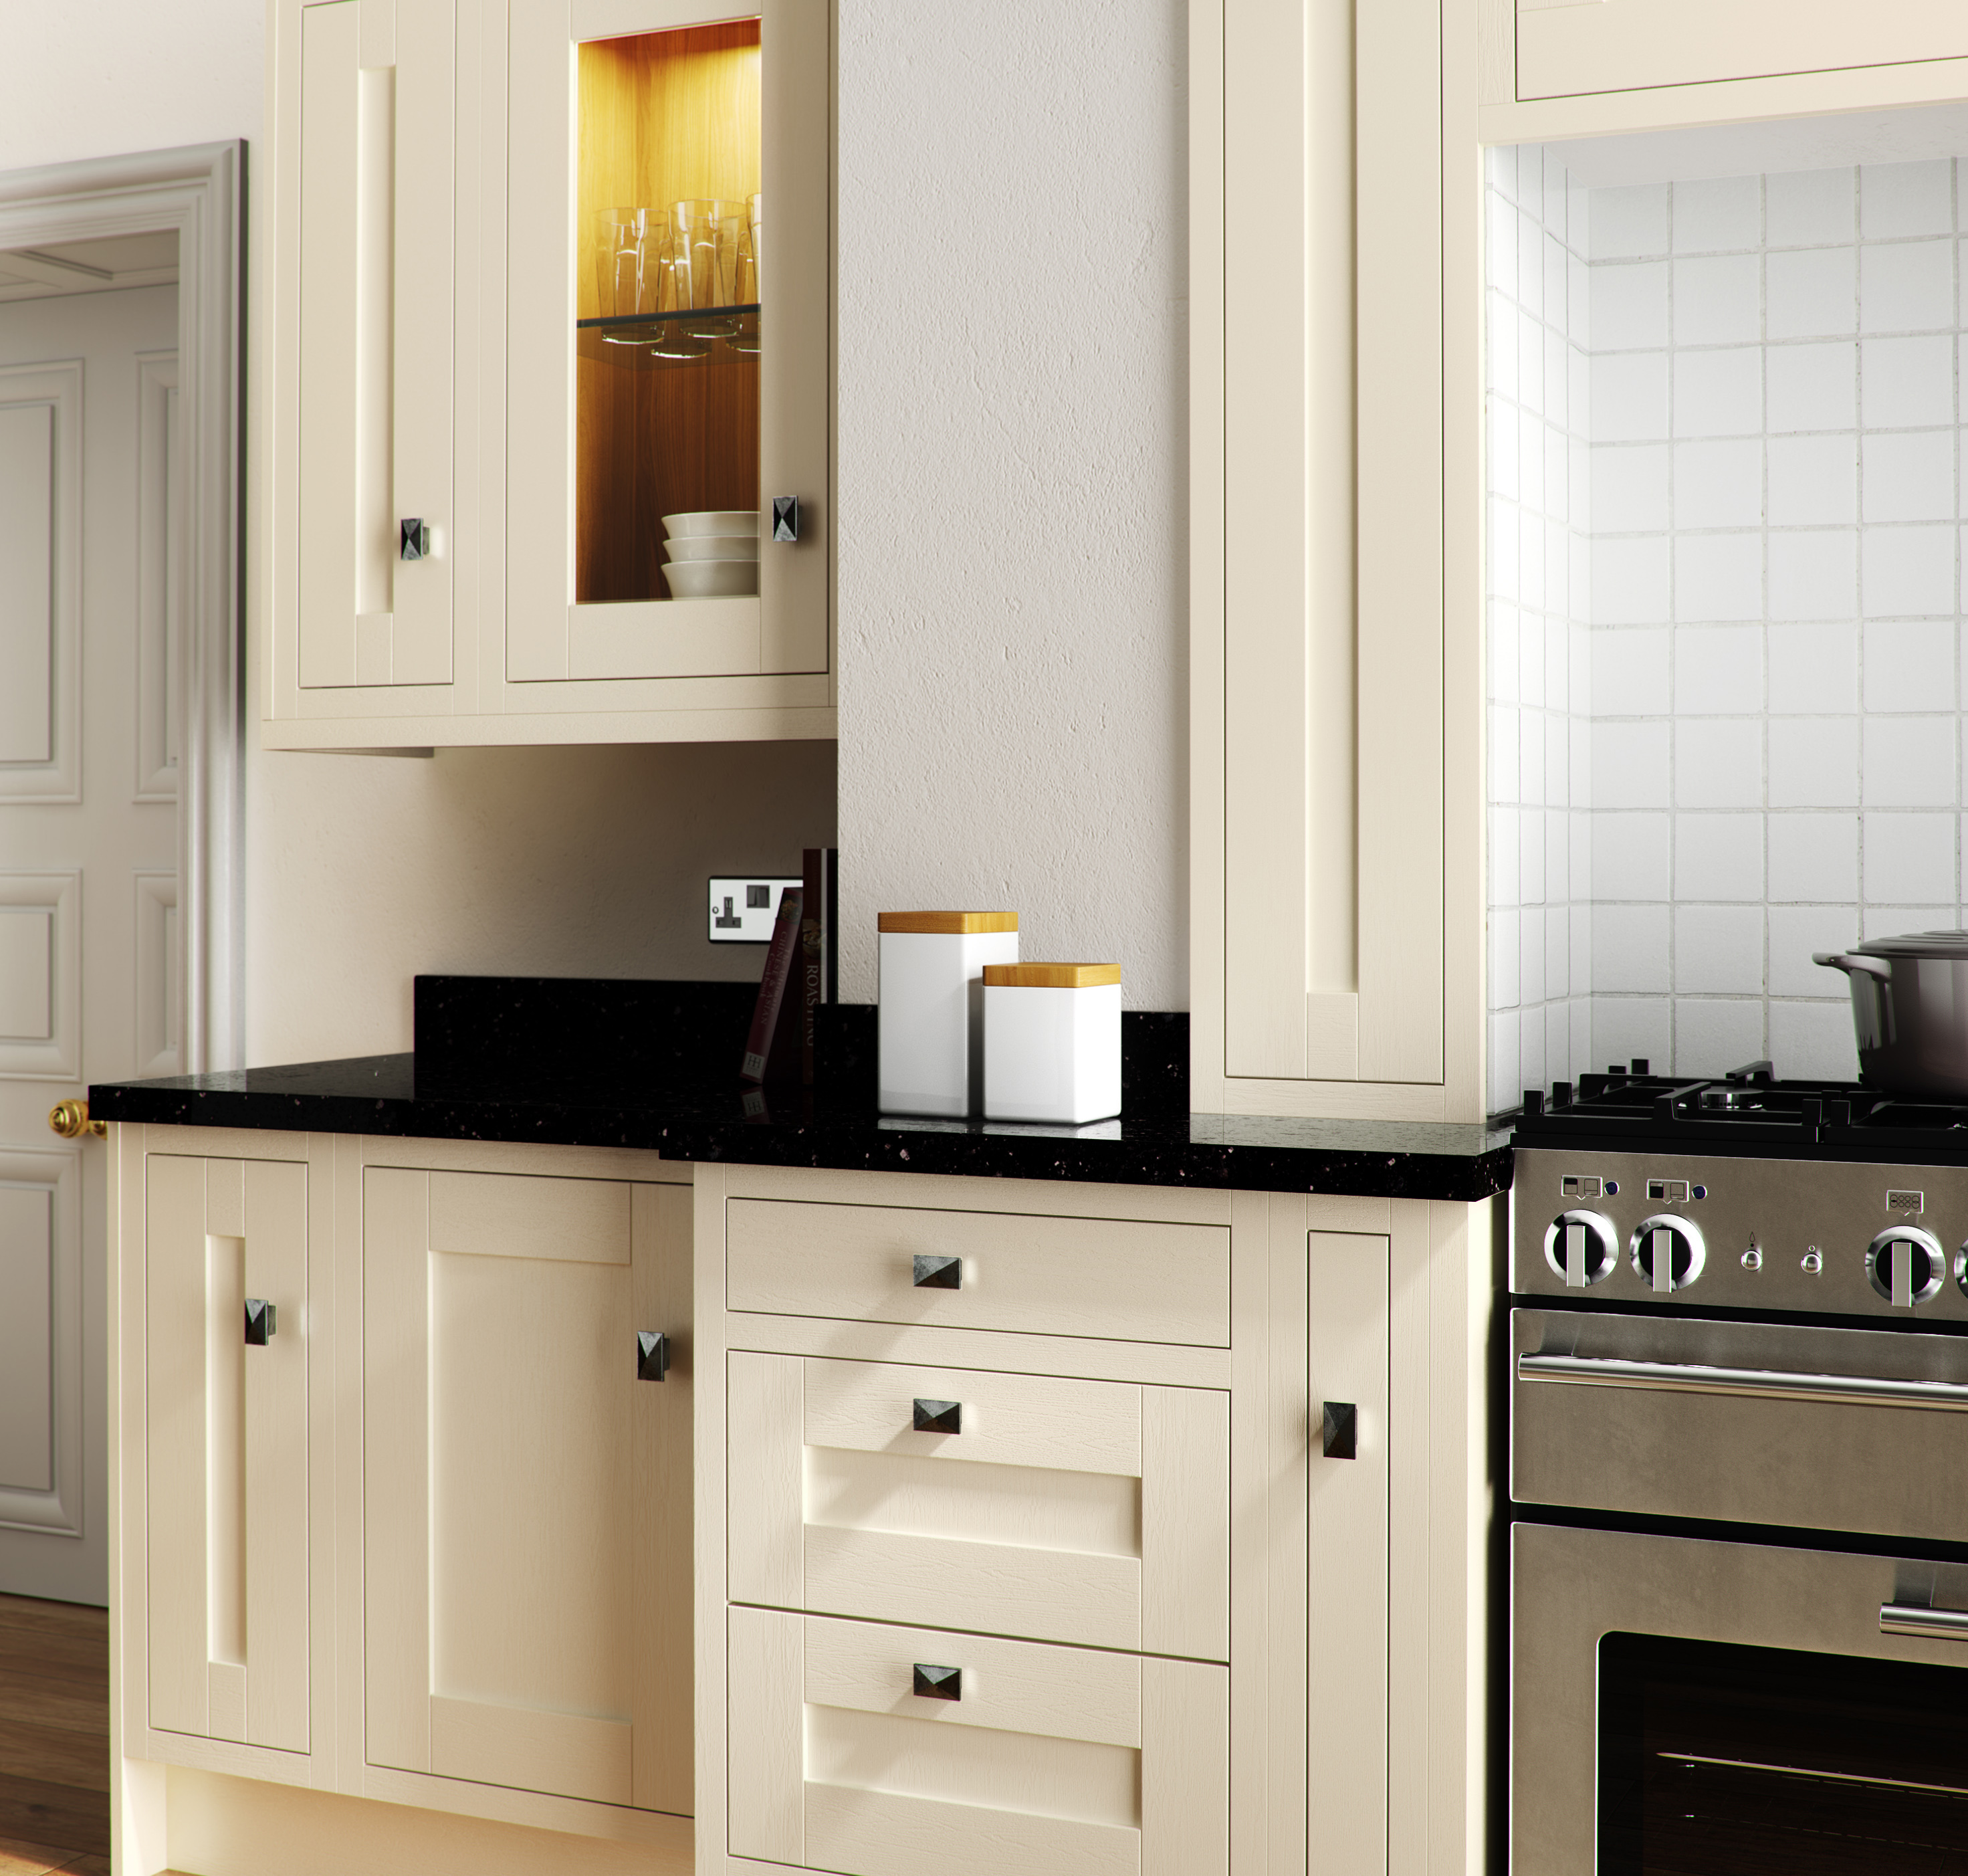 Free Kitchen Design Edinburgh Sheraton Painted In Frame 4homes